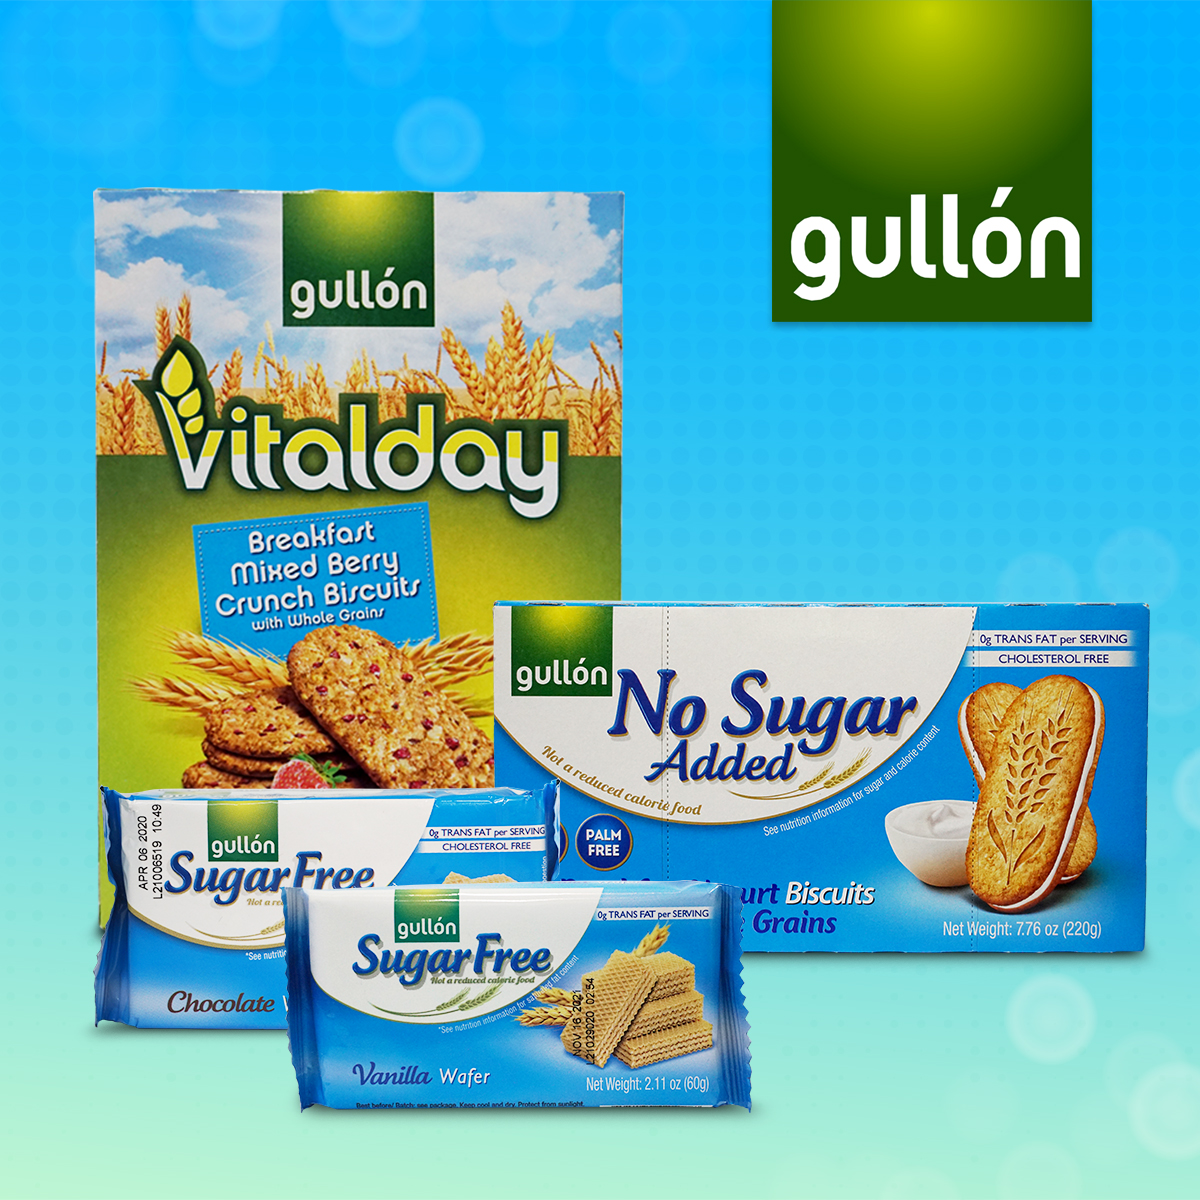 Get into Smart Snacking with Gullón